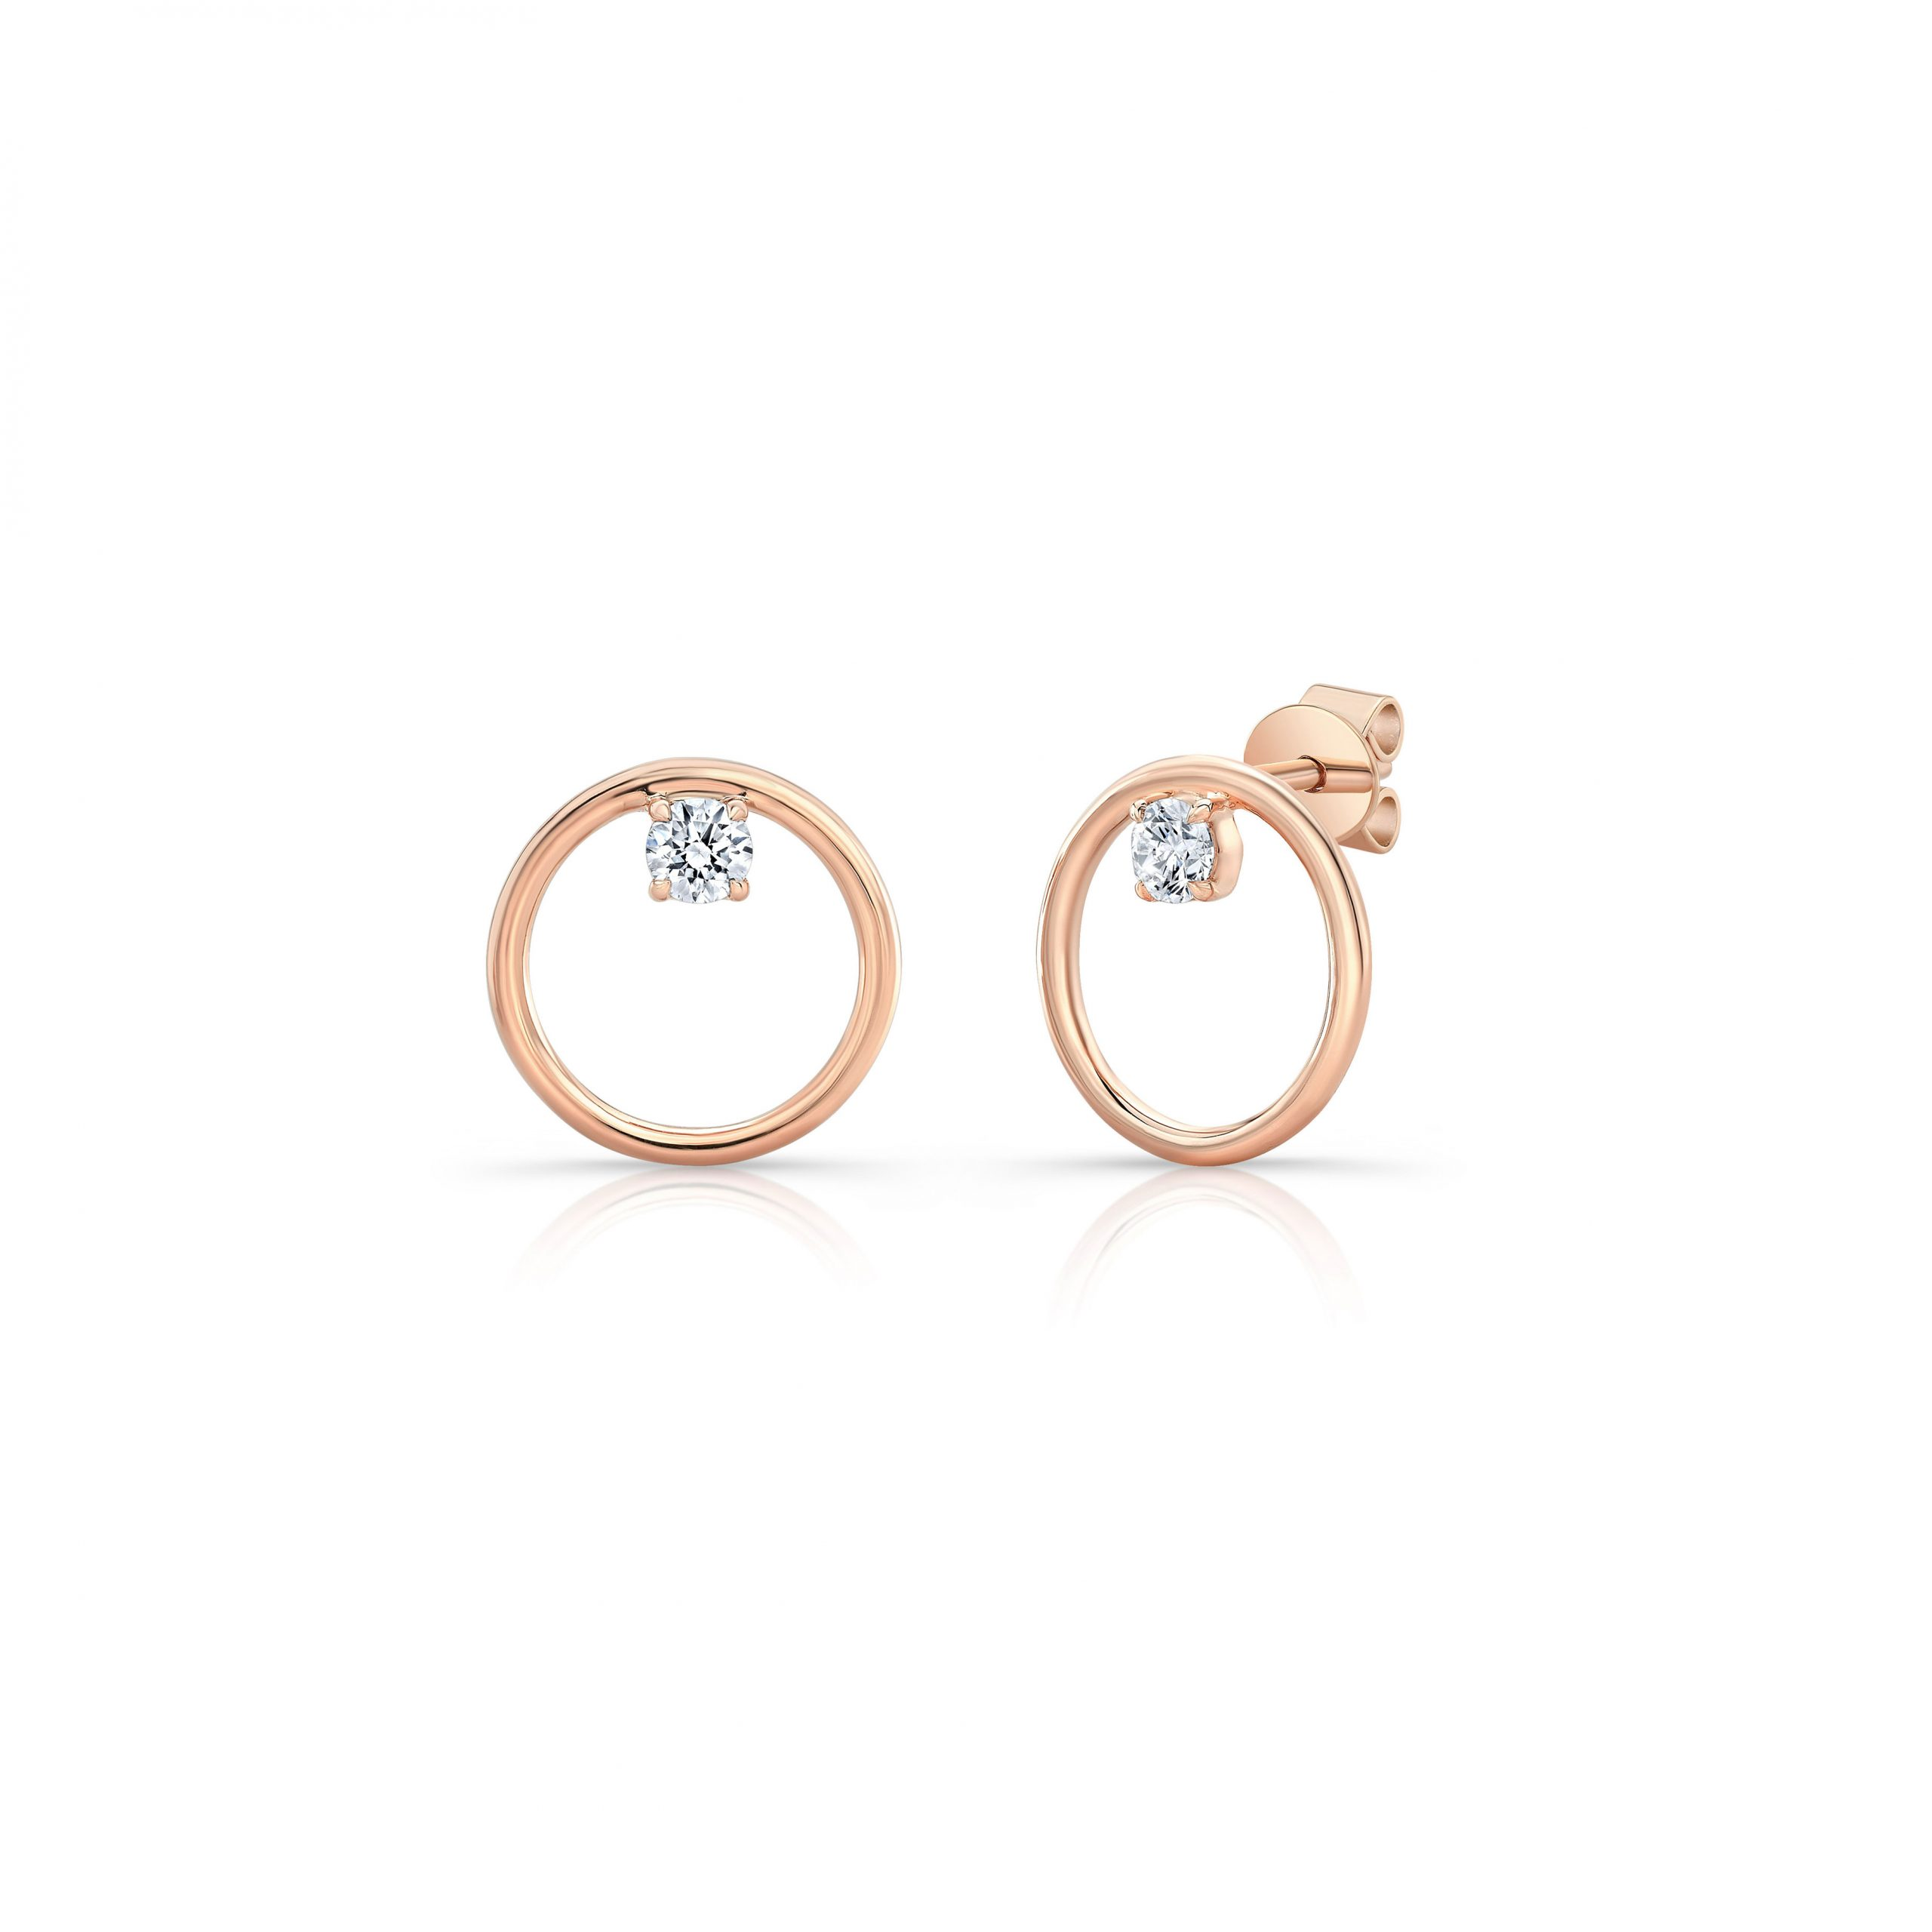 Colette Front Facing Diamond Hoop Earrings in 18k Rose Gold Side View by Oui by Jean Dousset